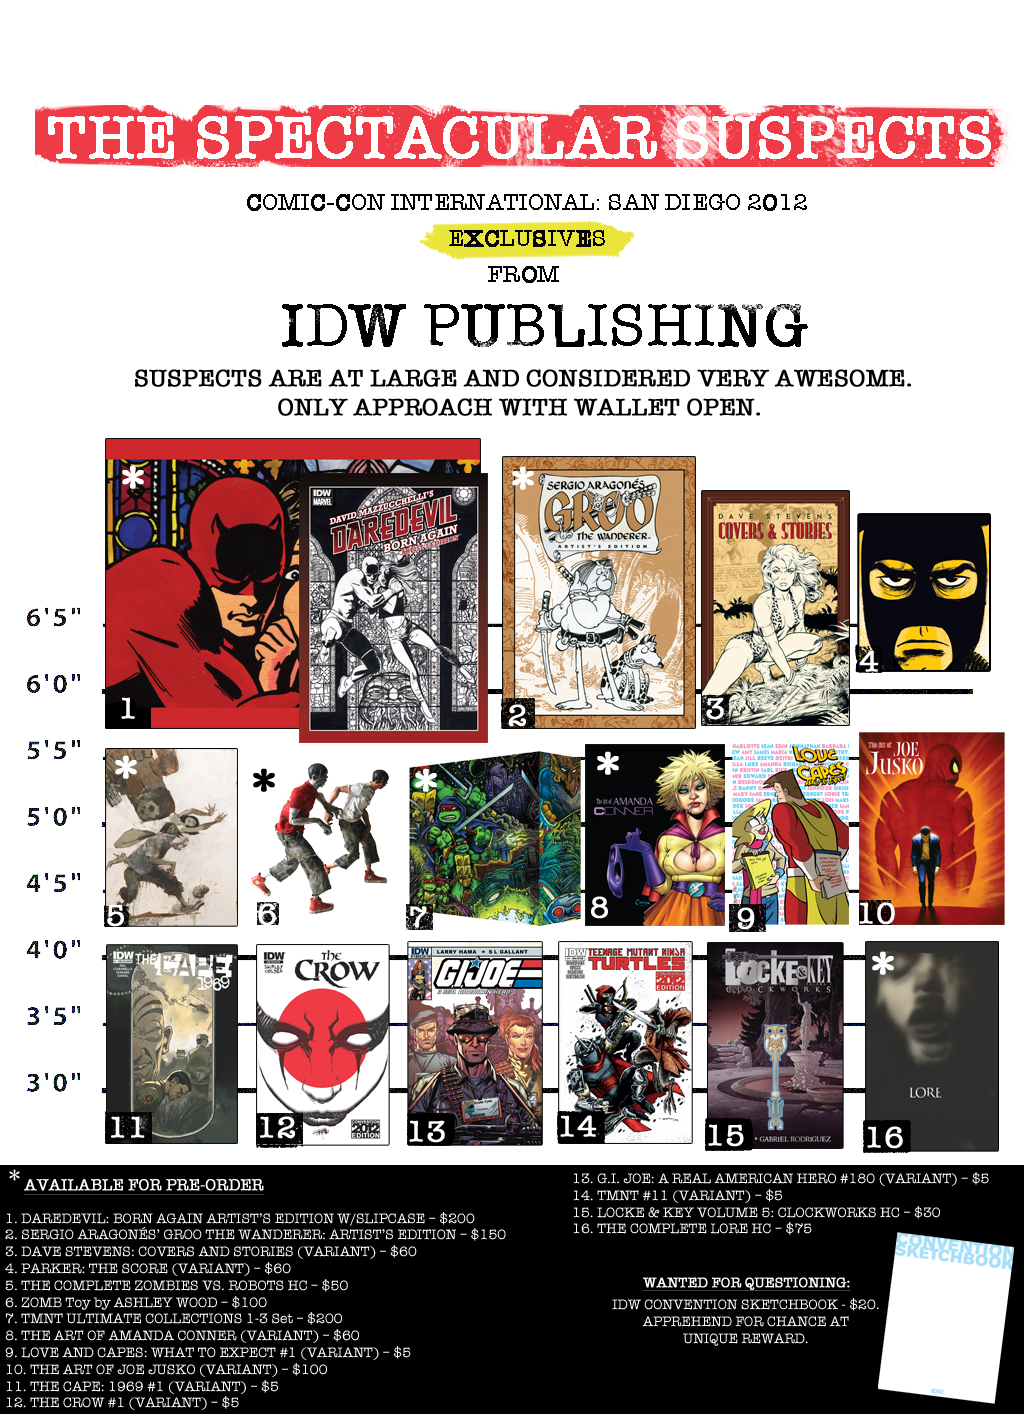 IDW Spectacular Suspects